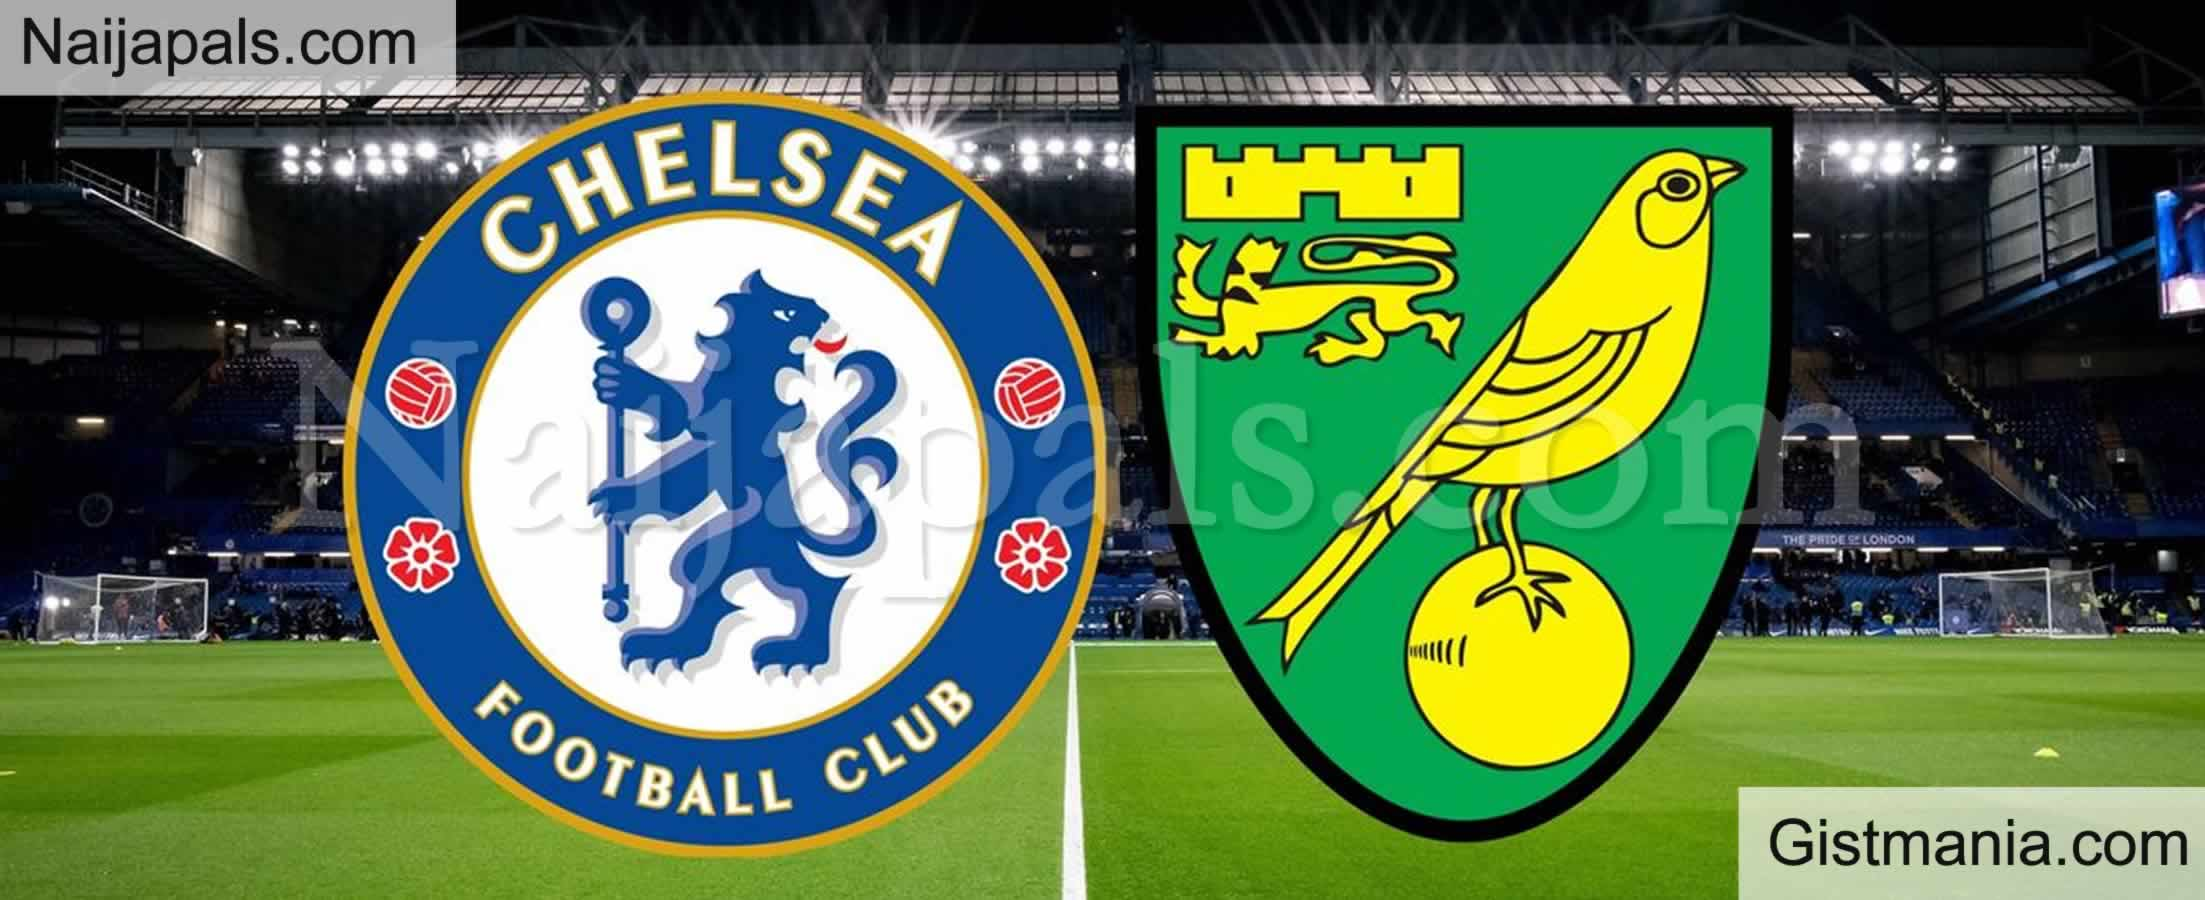 chelsea vs norwich city - photo #32